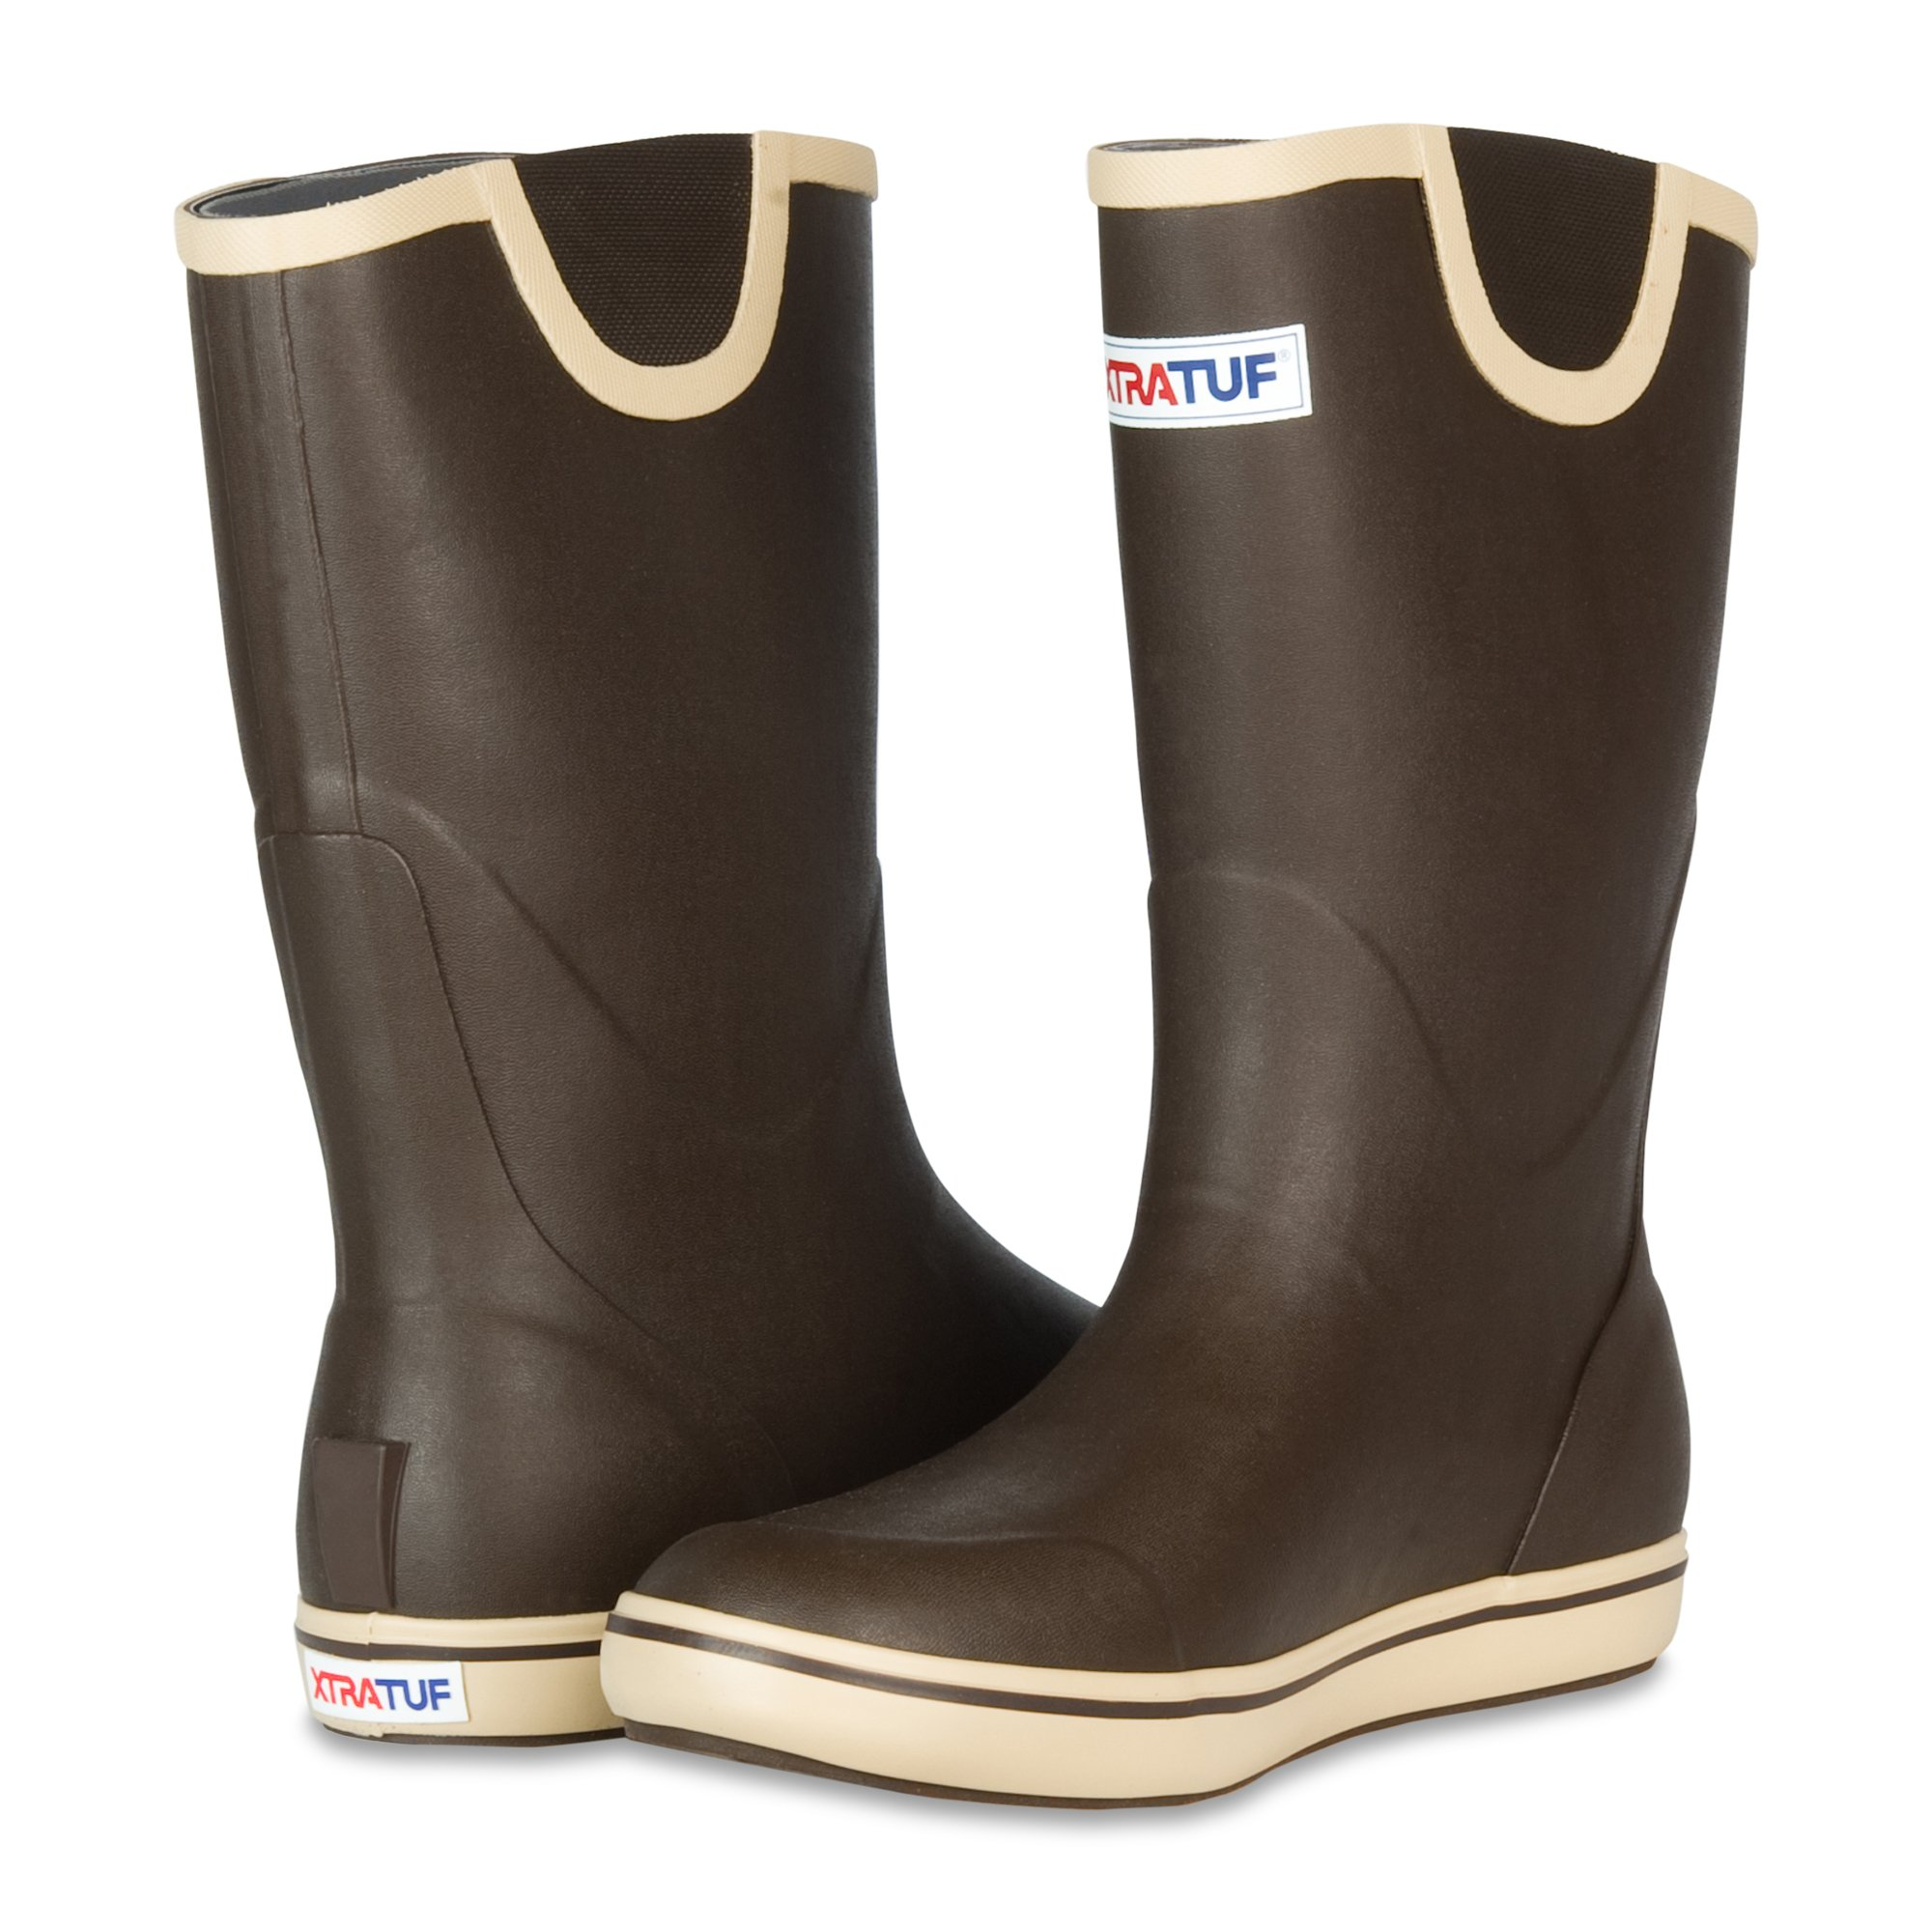 XTRATUF Performance Series 12'' Men's Full Rubber Deck Boots, Chocolate & Tan (22702) by Xtratuf (Image #7)